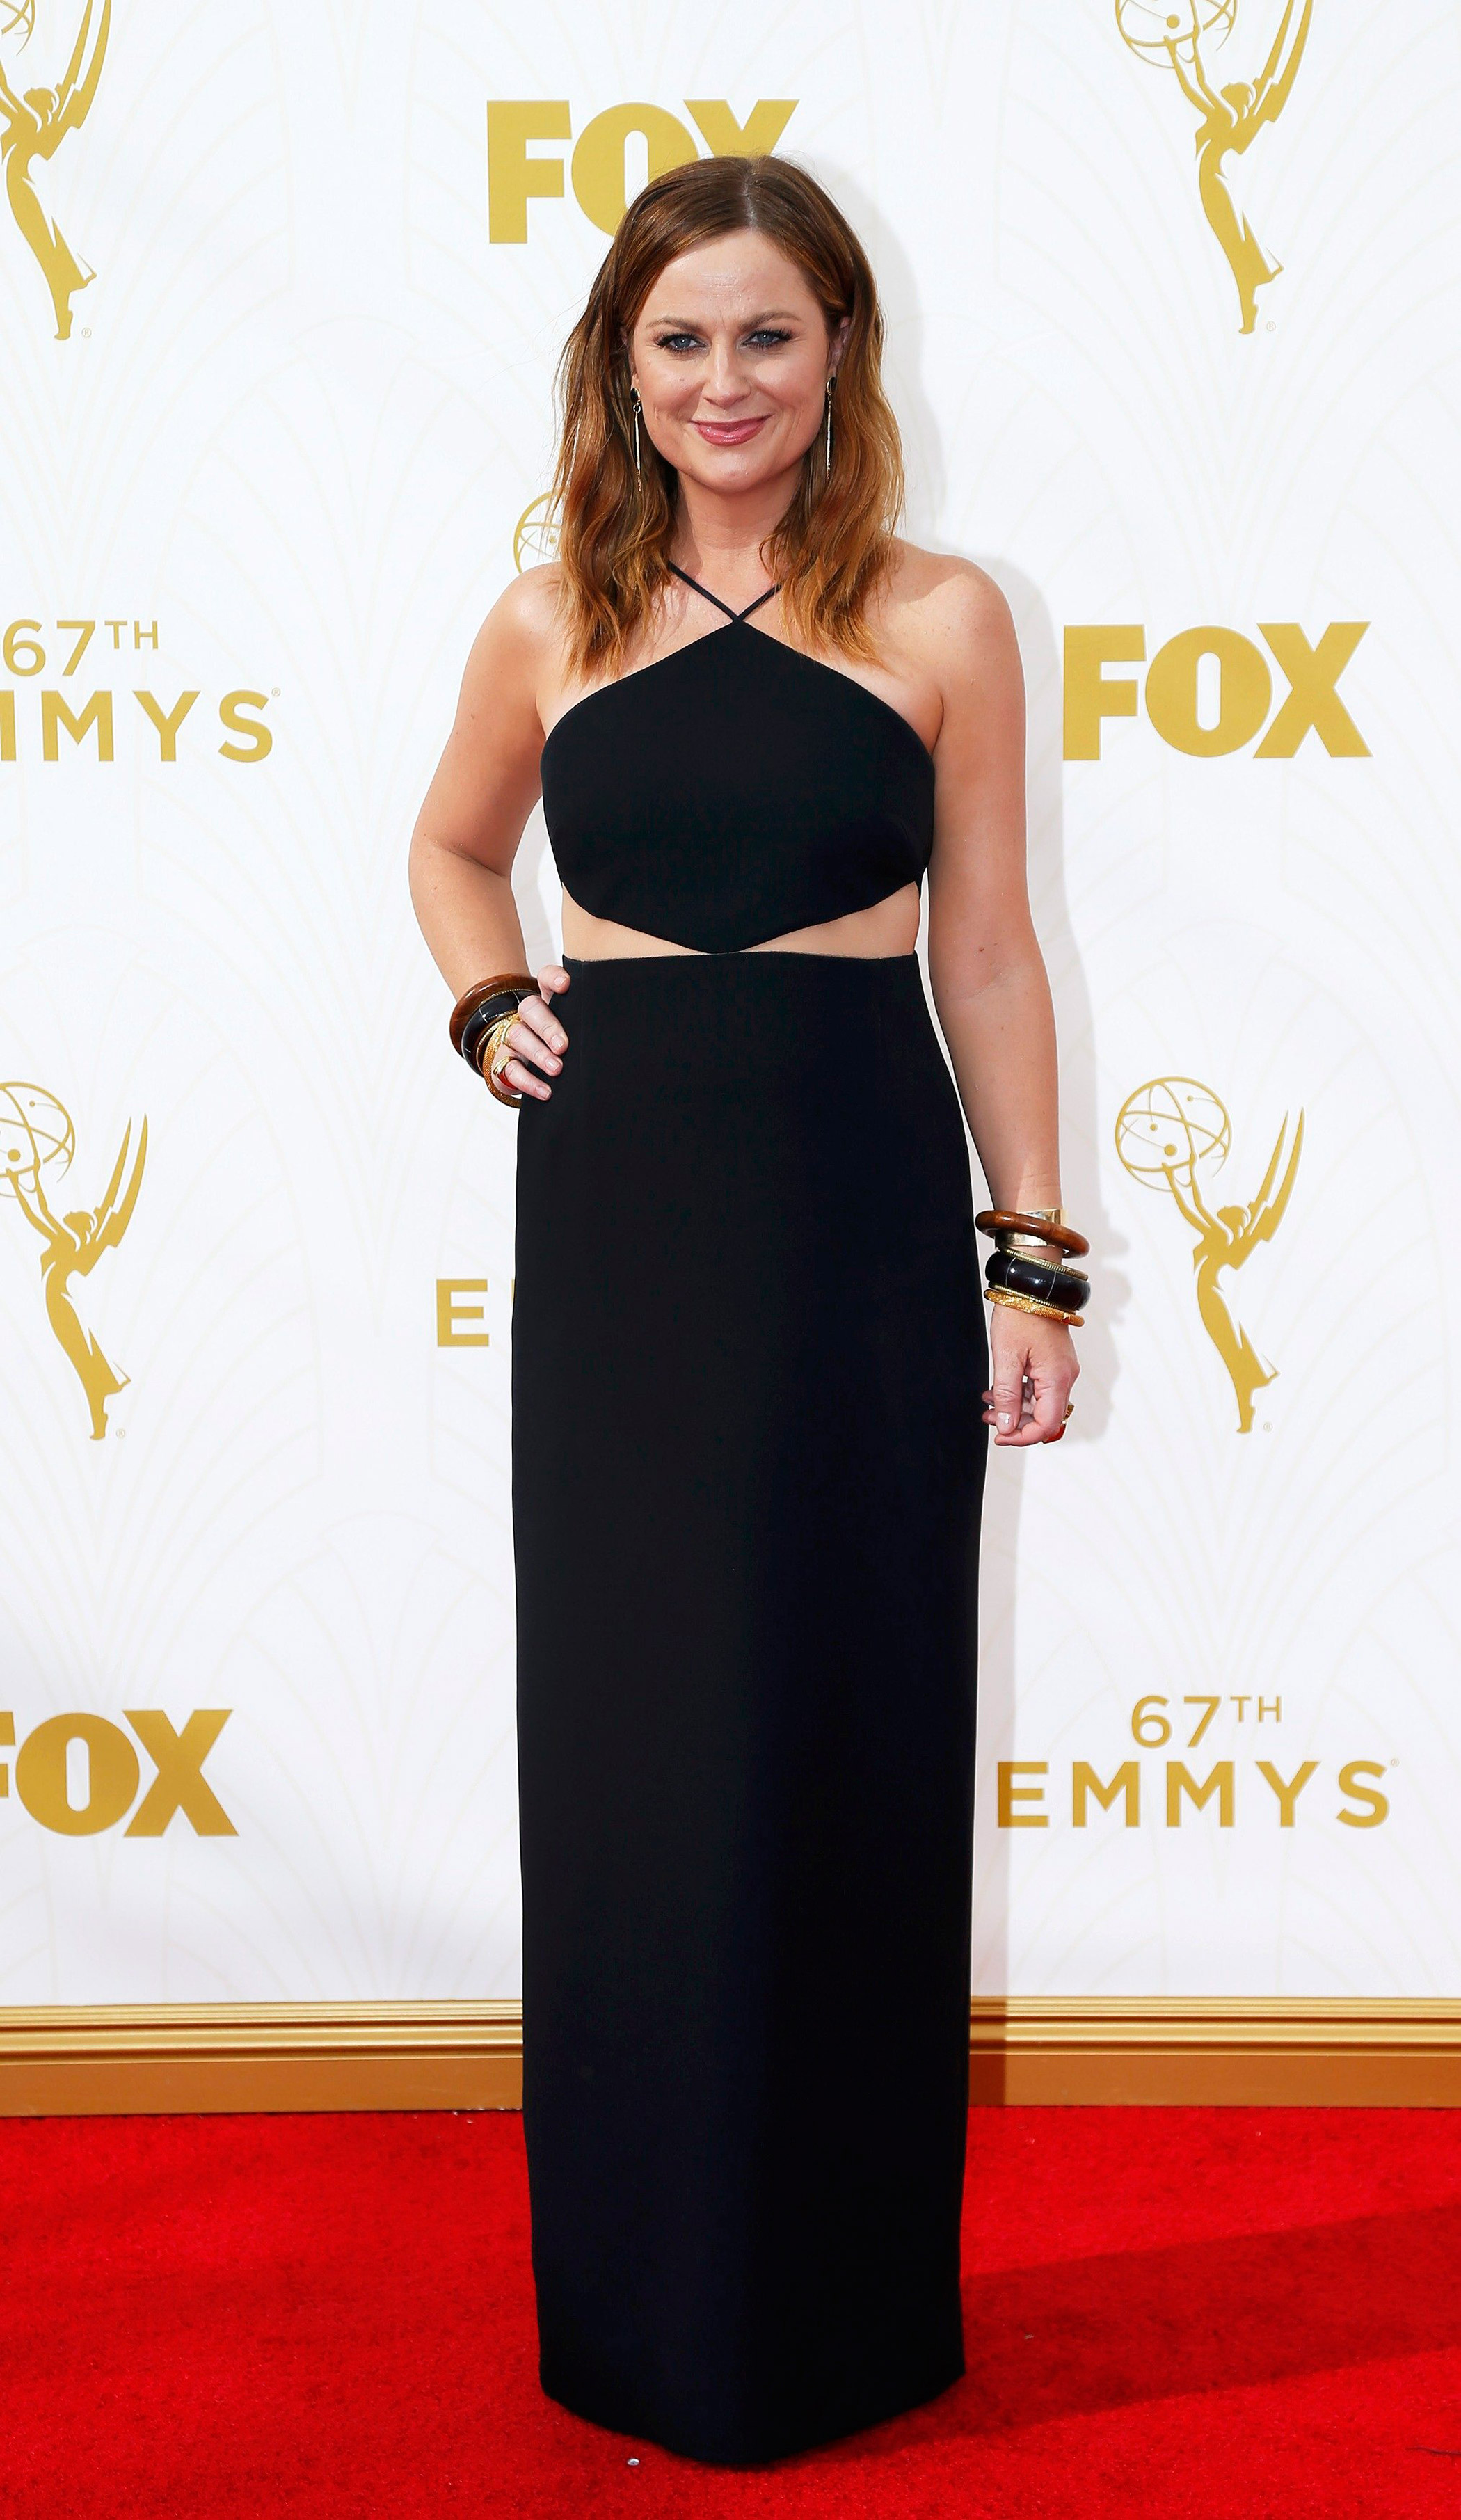 Amy Poehler  at the 67th Emmy Award on Sept. 20, 2015 in Los Angeles.